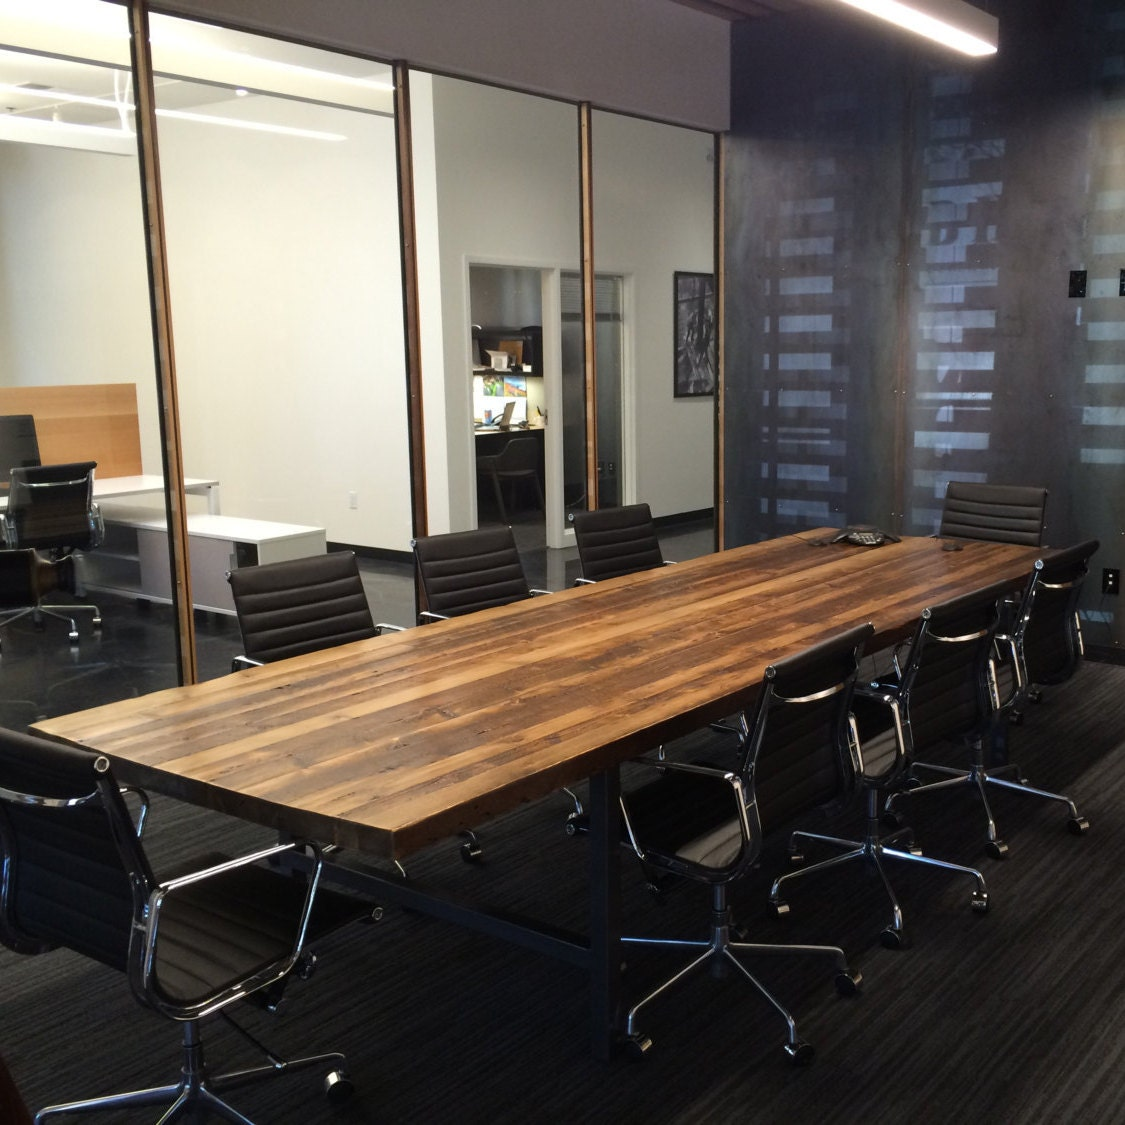 Wood Conference Table In Thick Reclaimed Wood And Steel Legs